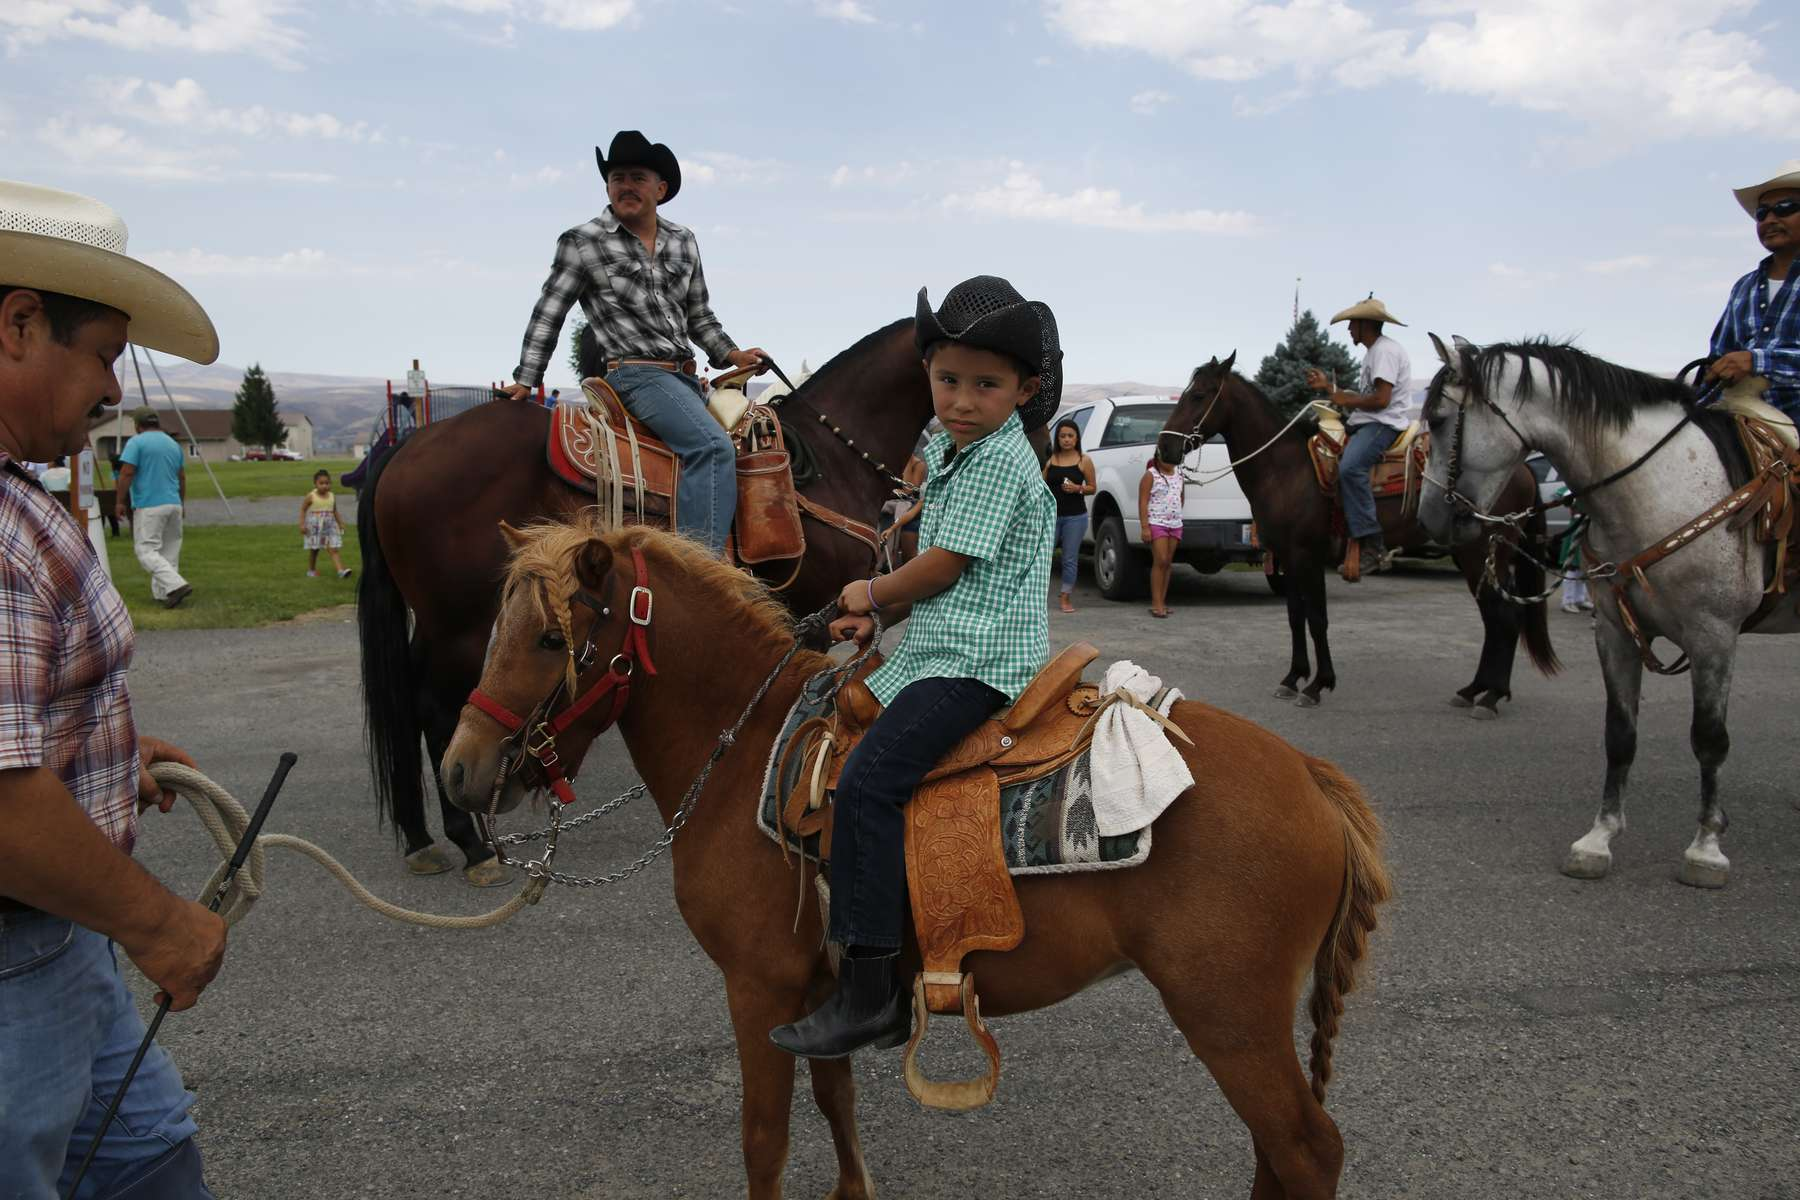 Juan Erazo, left, holds the lead line of his son, Azel's pony, Carinoso, as they ride during the Mattawa Community Day parade in Mattawa, Washington August 24, 2013. A few years ago, the city had canceled the longtime celebration because there were too few volunteers. But Maggie Celaya, a city councilor, and her sister, Lola Cruz, who teaches citizenship classes, worked to bring it back in 2012.